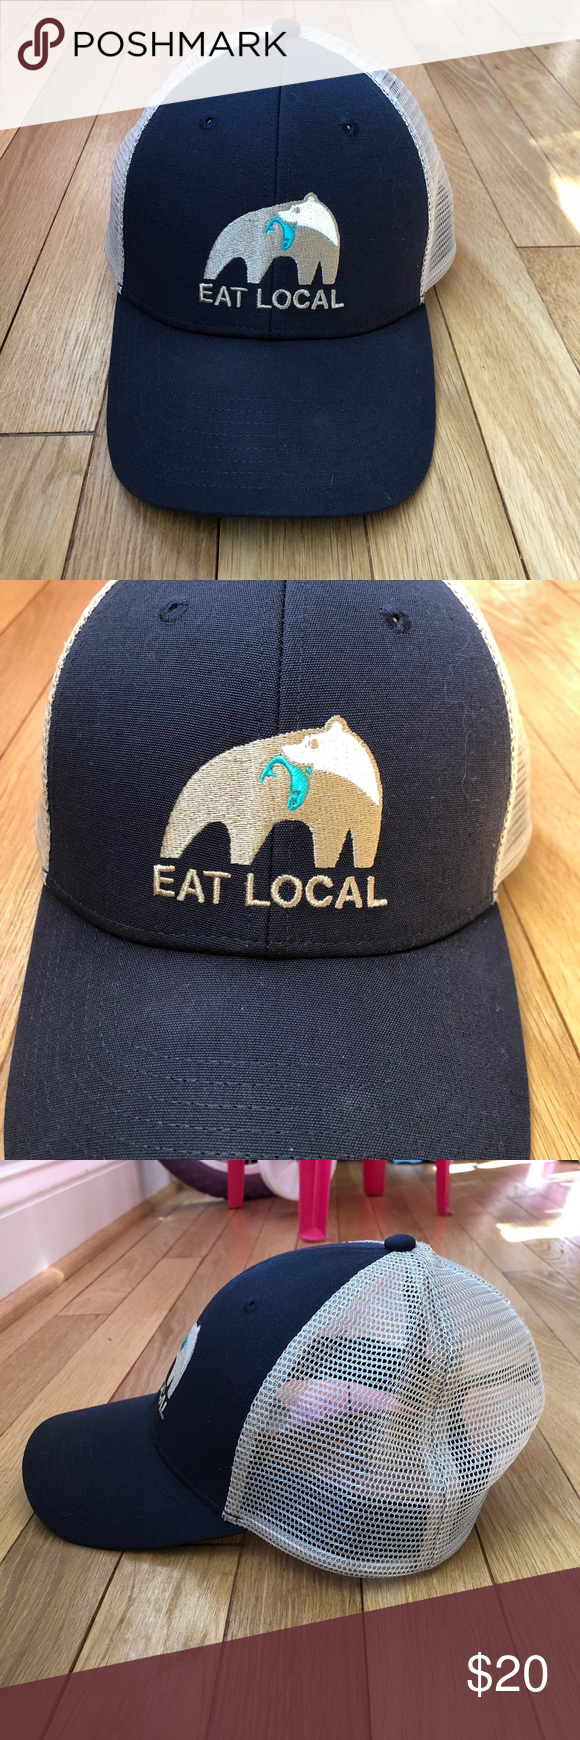 ba560c9a77 Patagonia Eat Local Trucker Hat